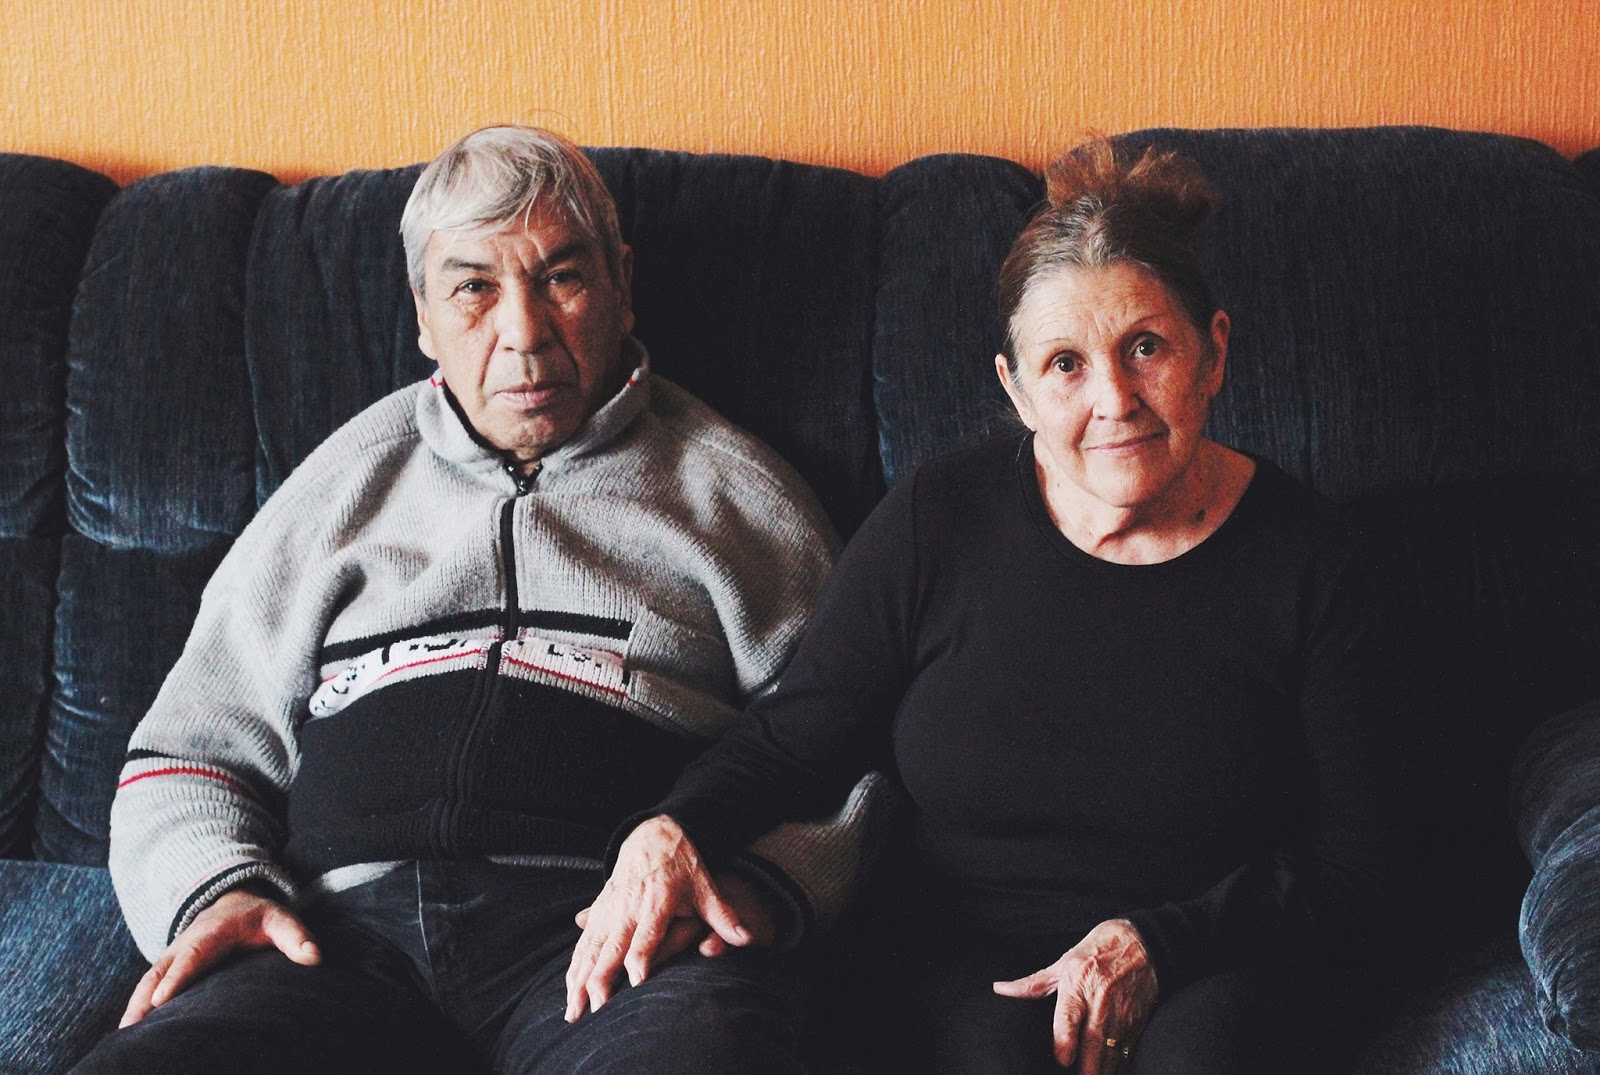 Older couple sitting on the couch sharing their live stories